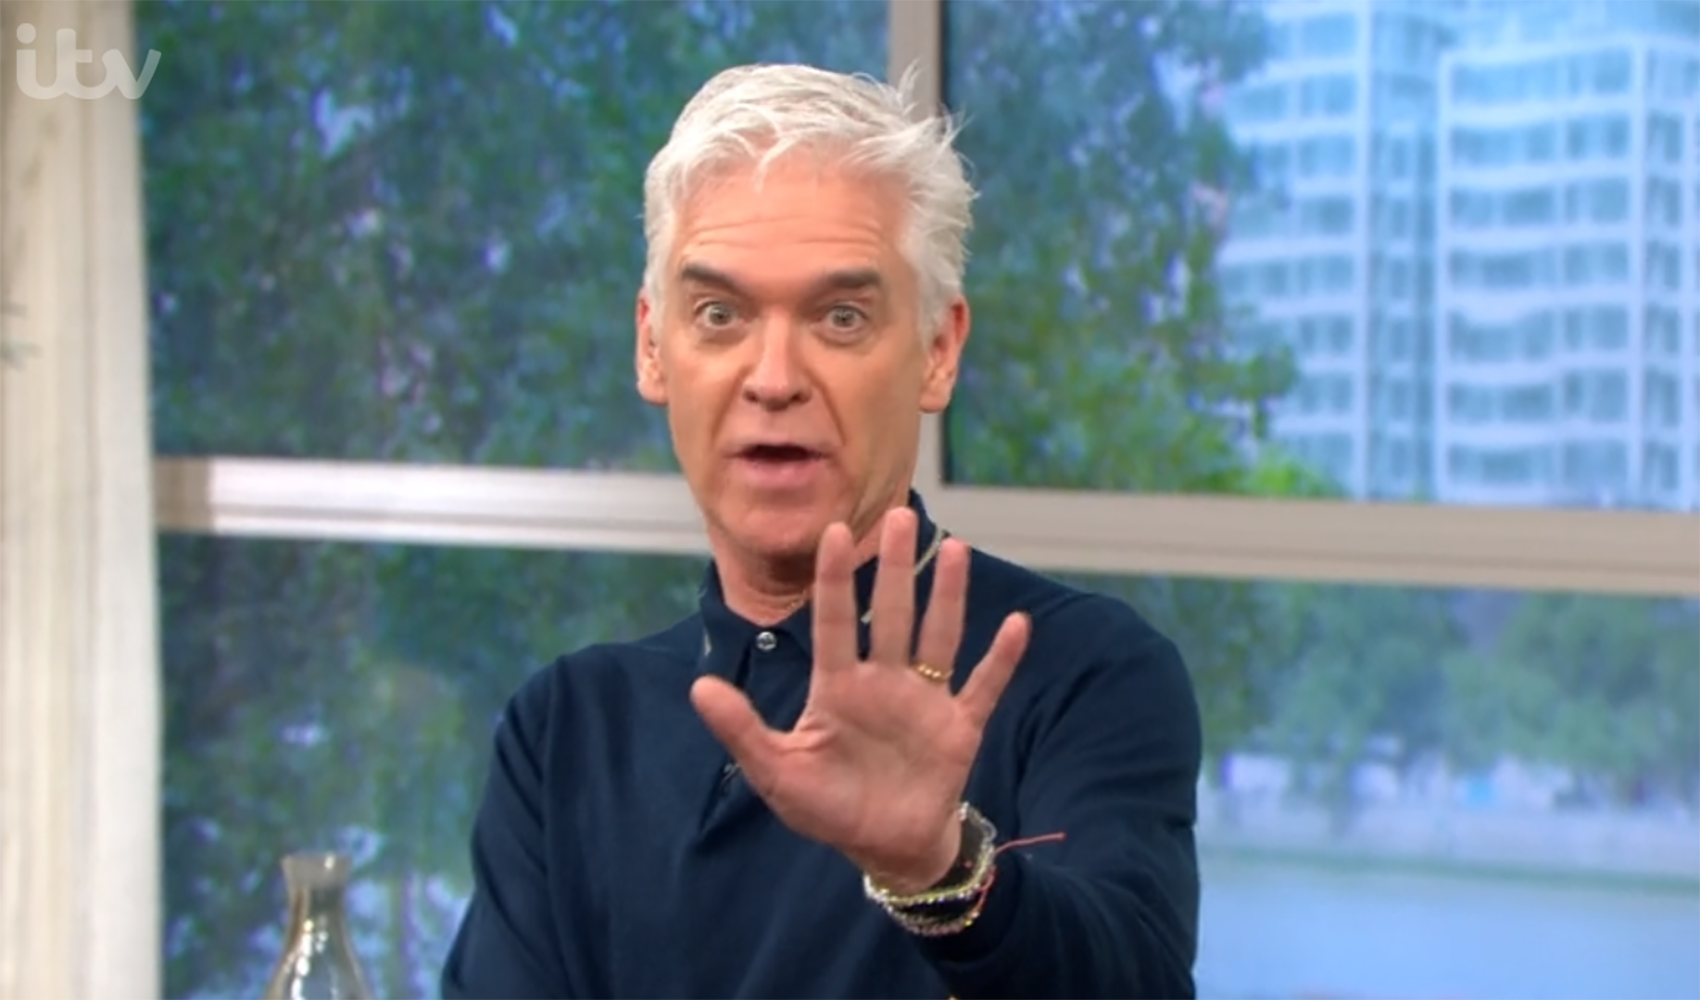 Phillip Schofield insists he's 'okay' after coughing on This Morning sparks concern